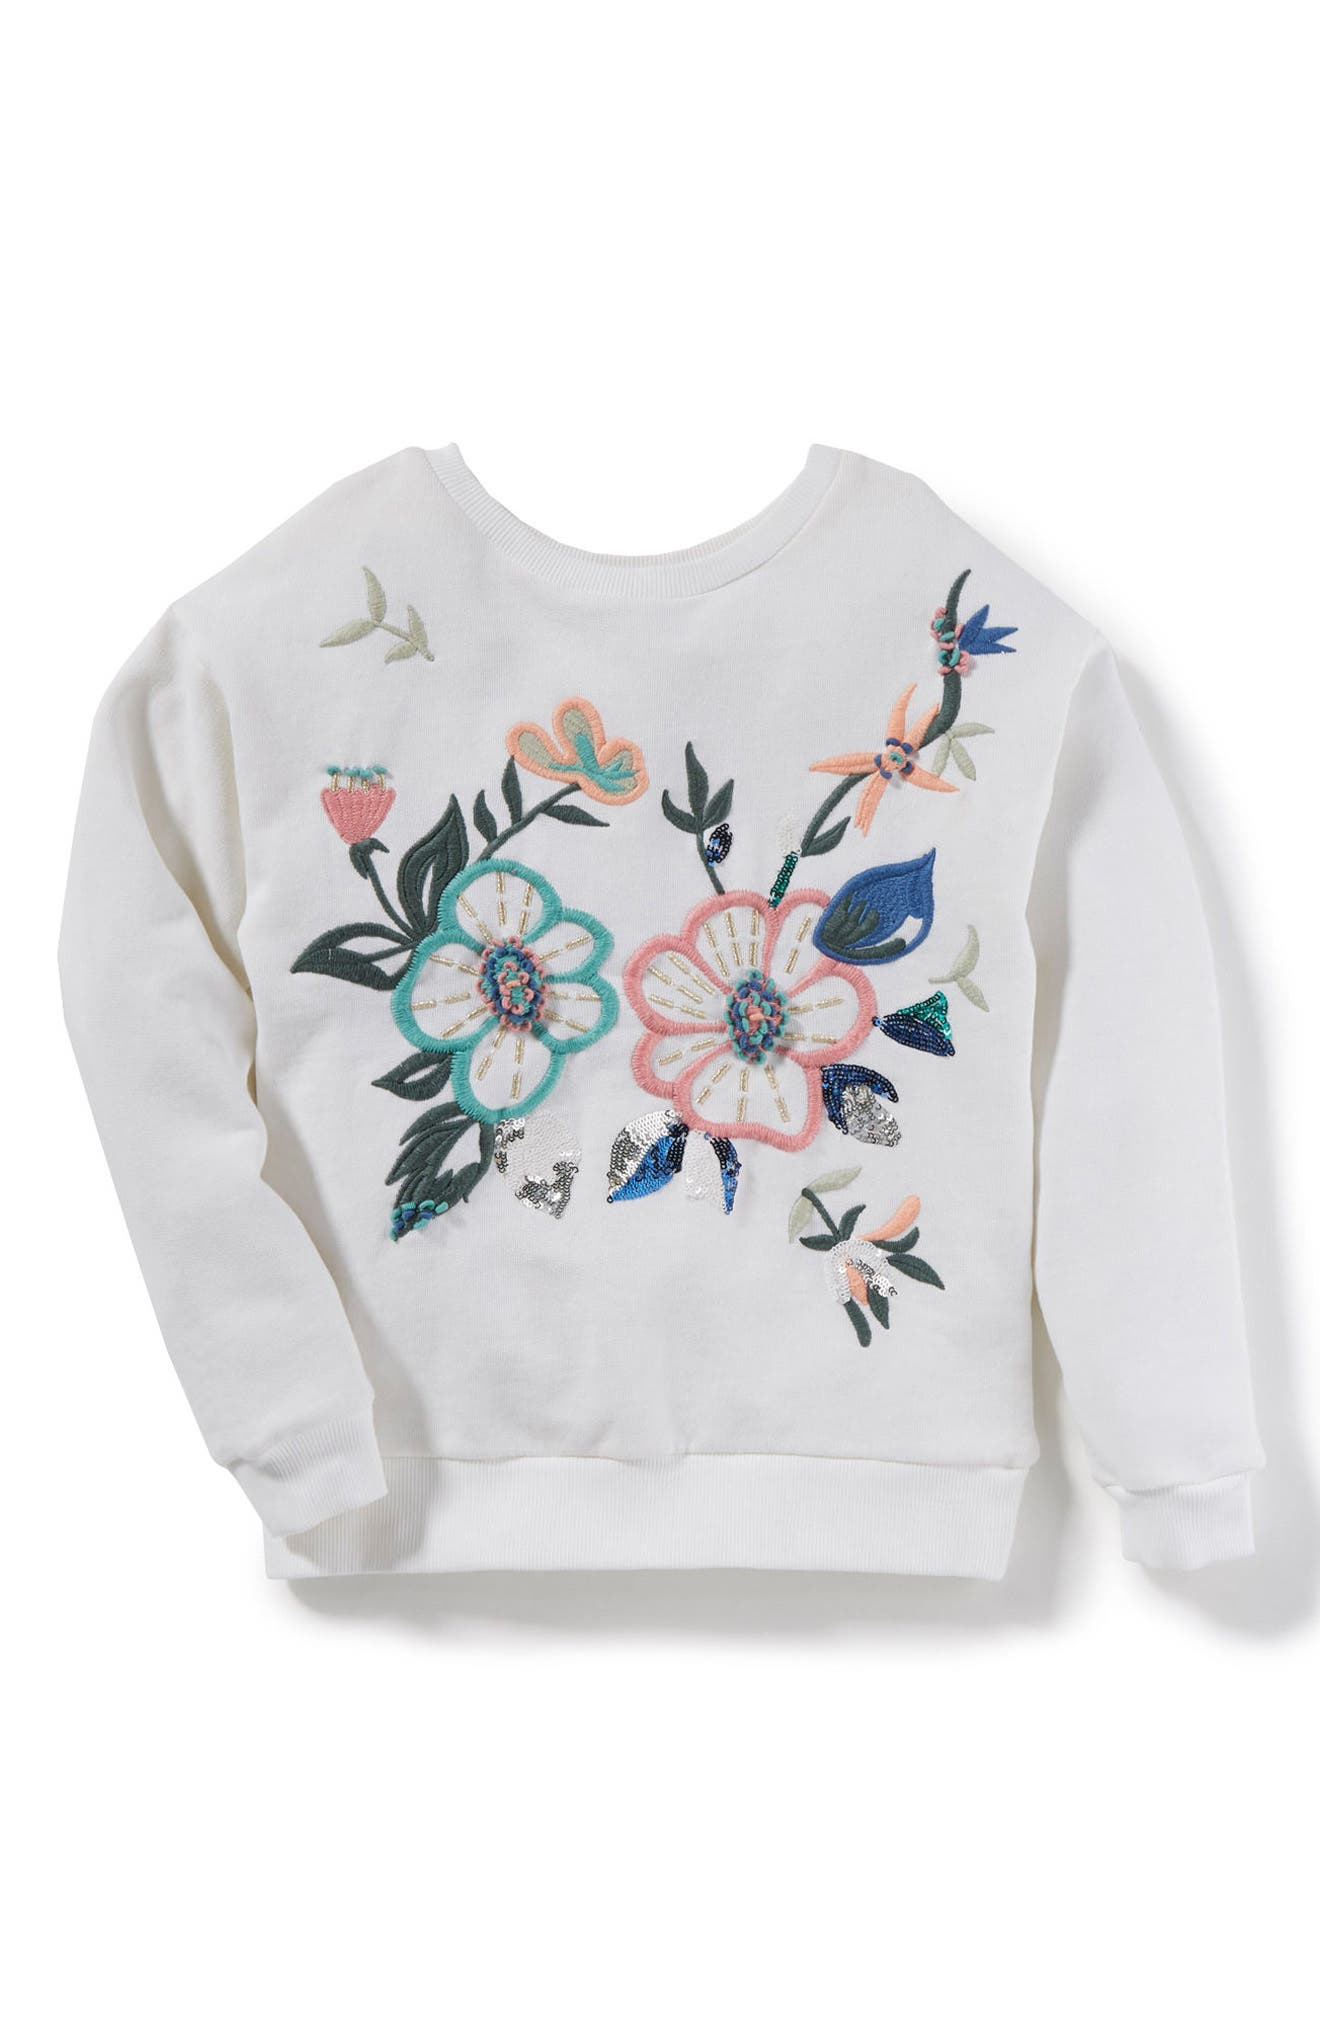 Kayla Sweatshirt,                             Main thumbnail 1, color,                             White